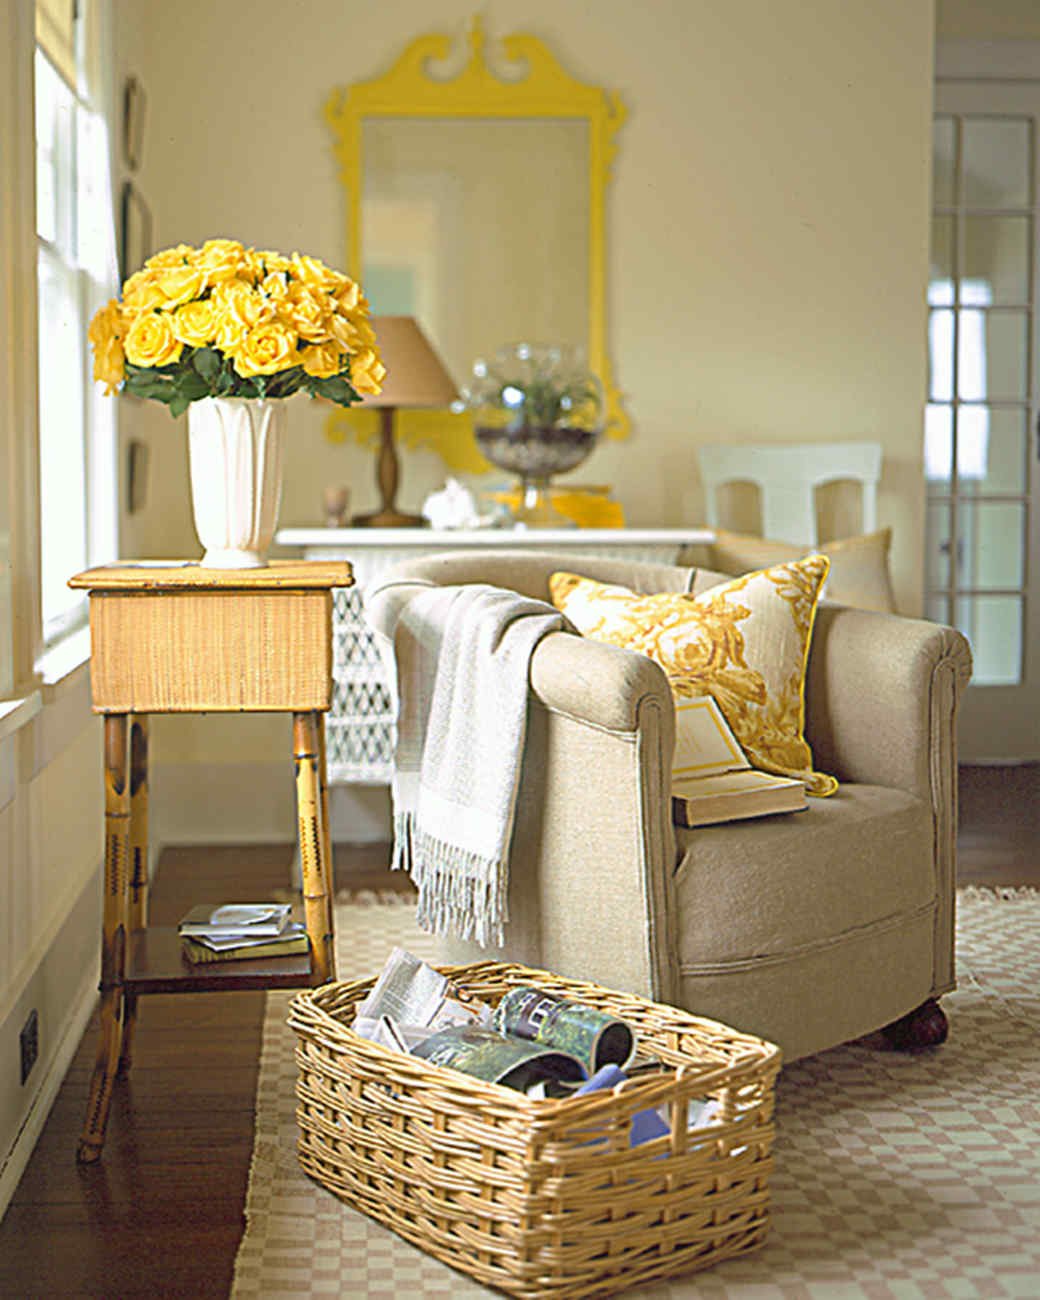 Bedroom Decor Yellow yellow rooms | martha stewart